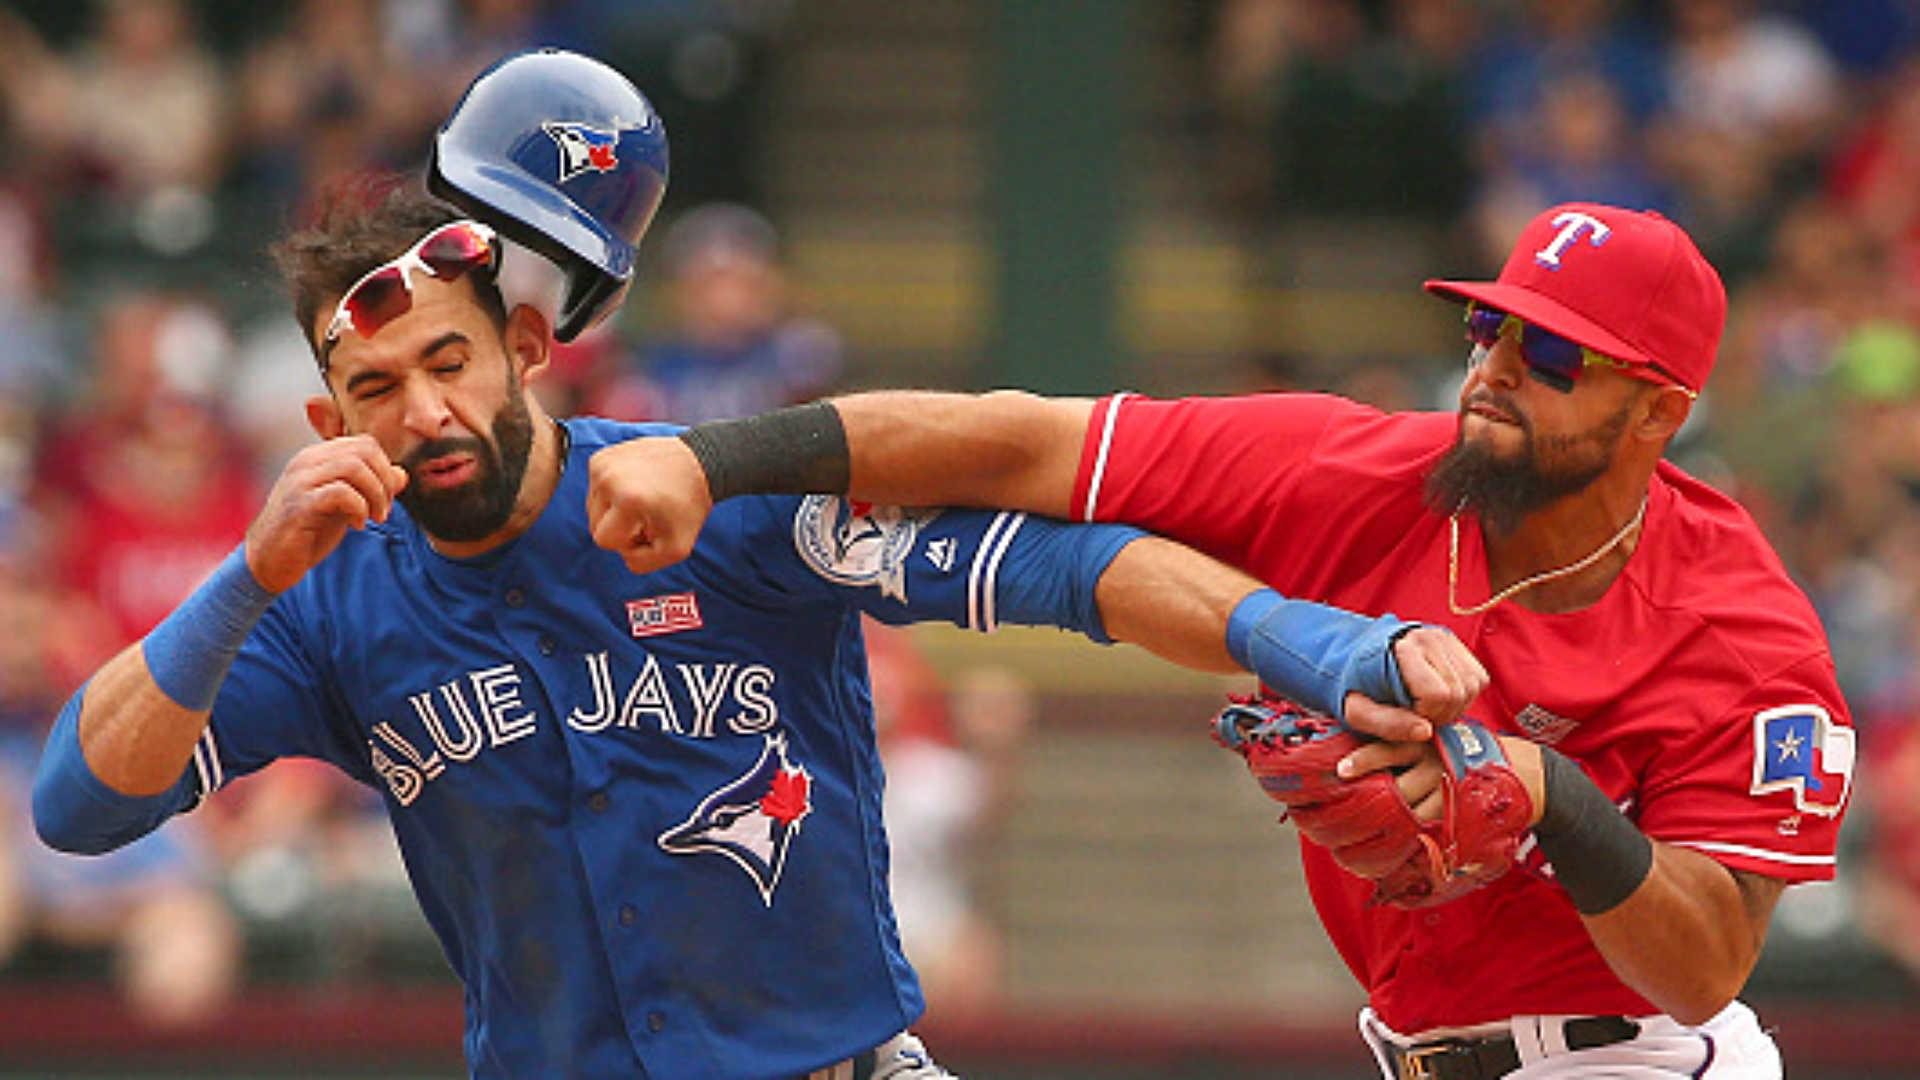 Rangers' Rougned Odor knows he's 'not a dirty player' despite brawl